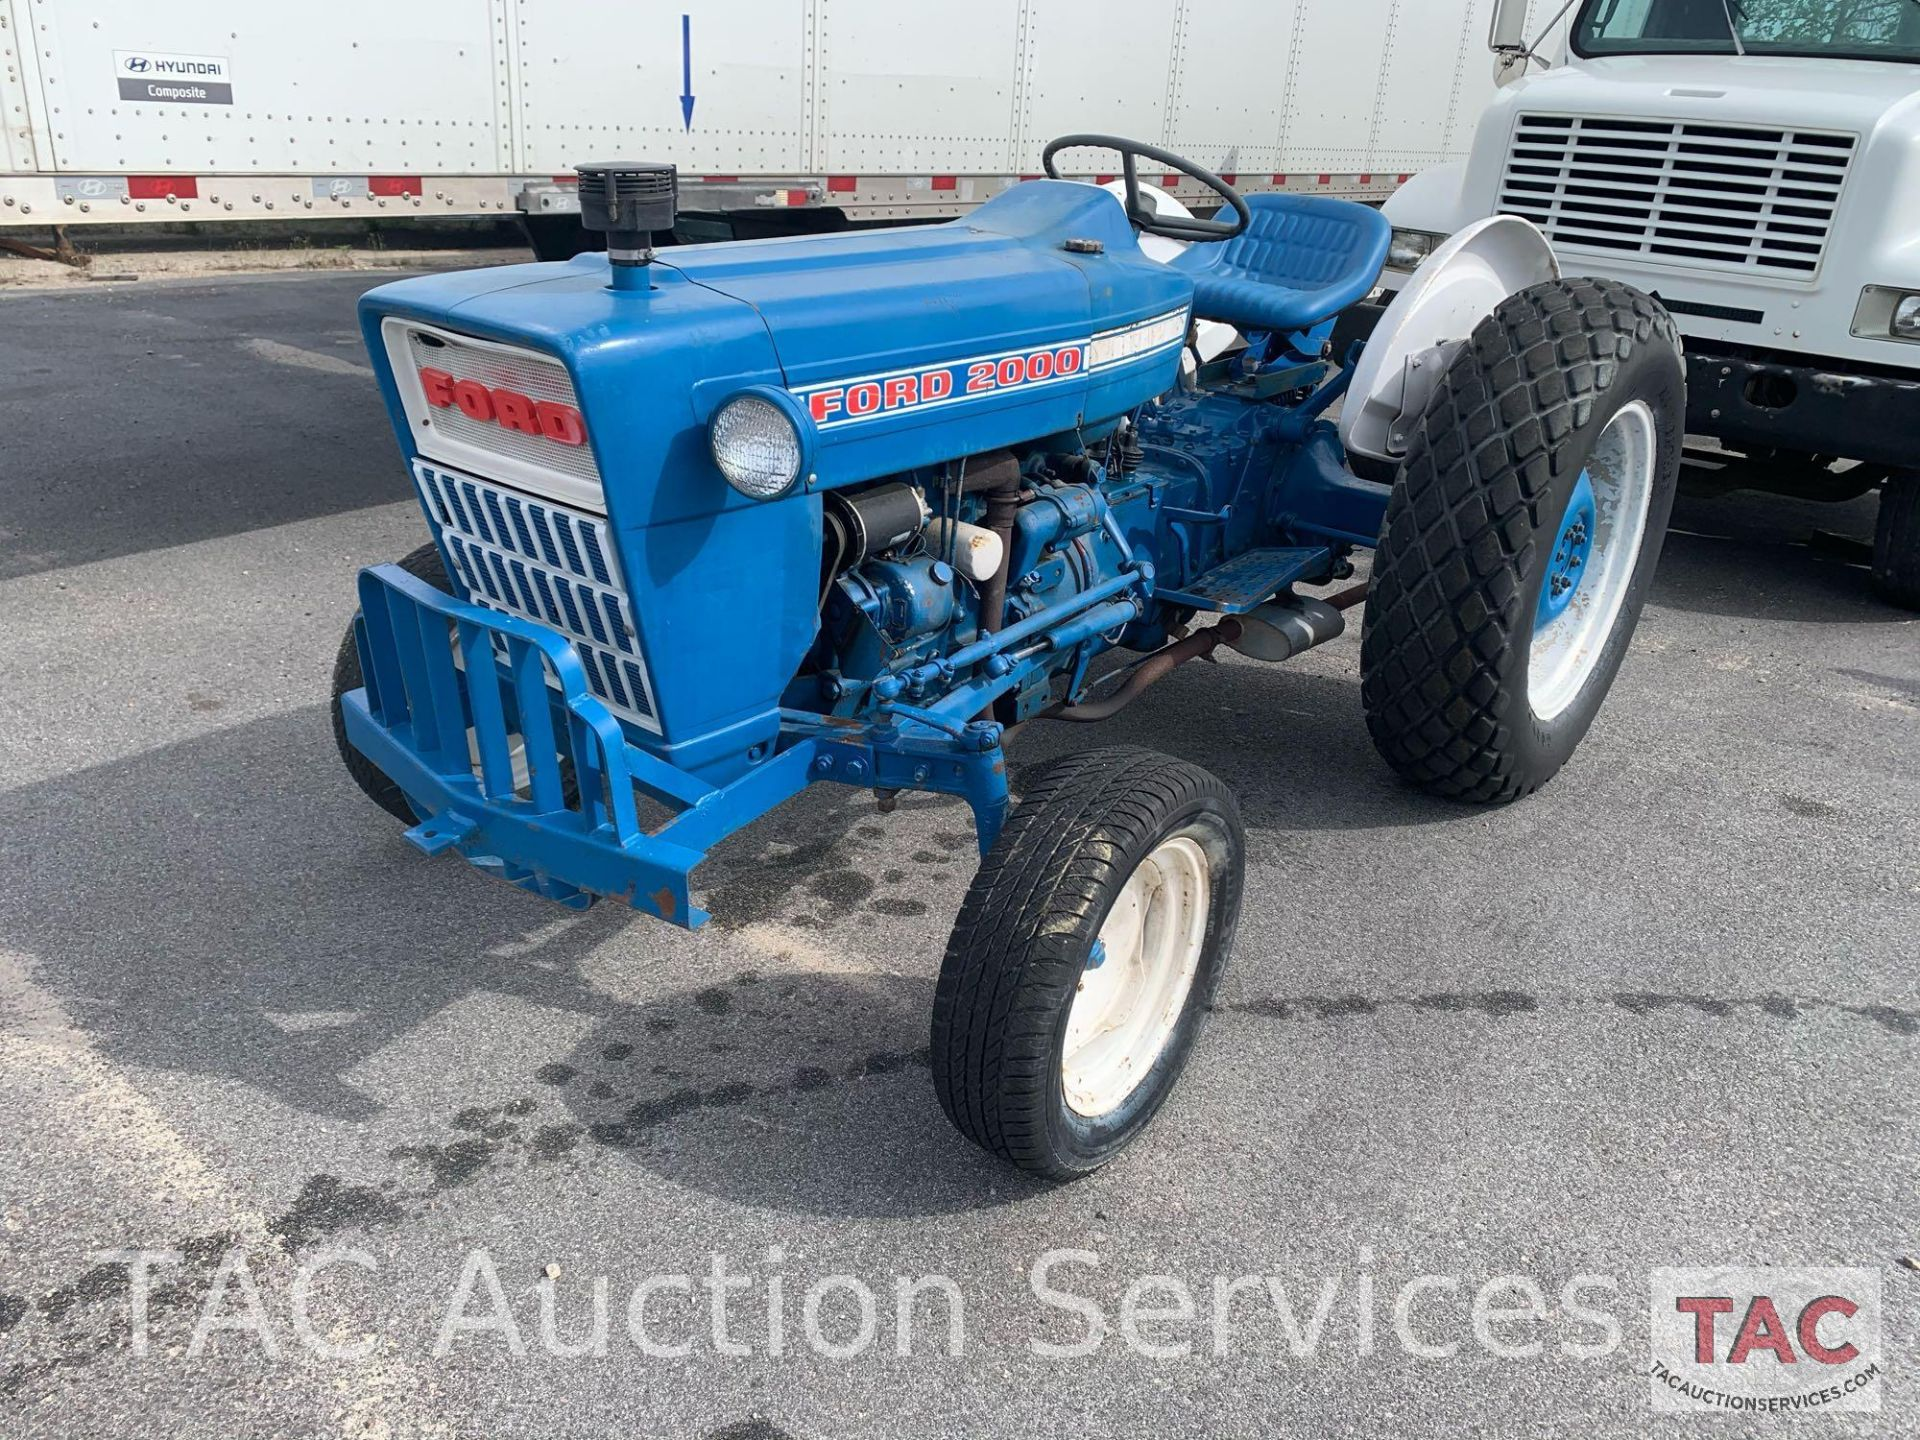 Ford 2000 Farm Tractor - Image 2 of 28